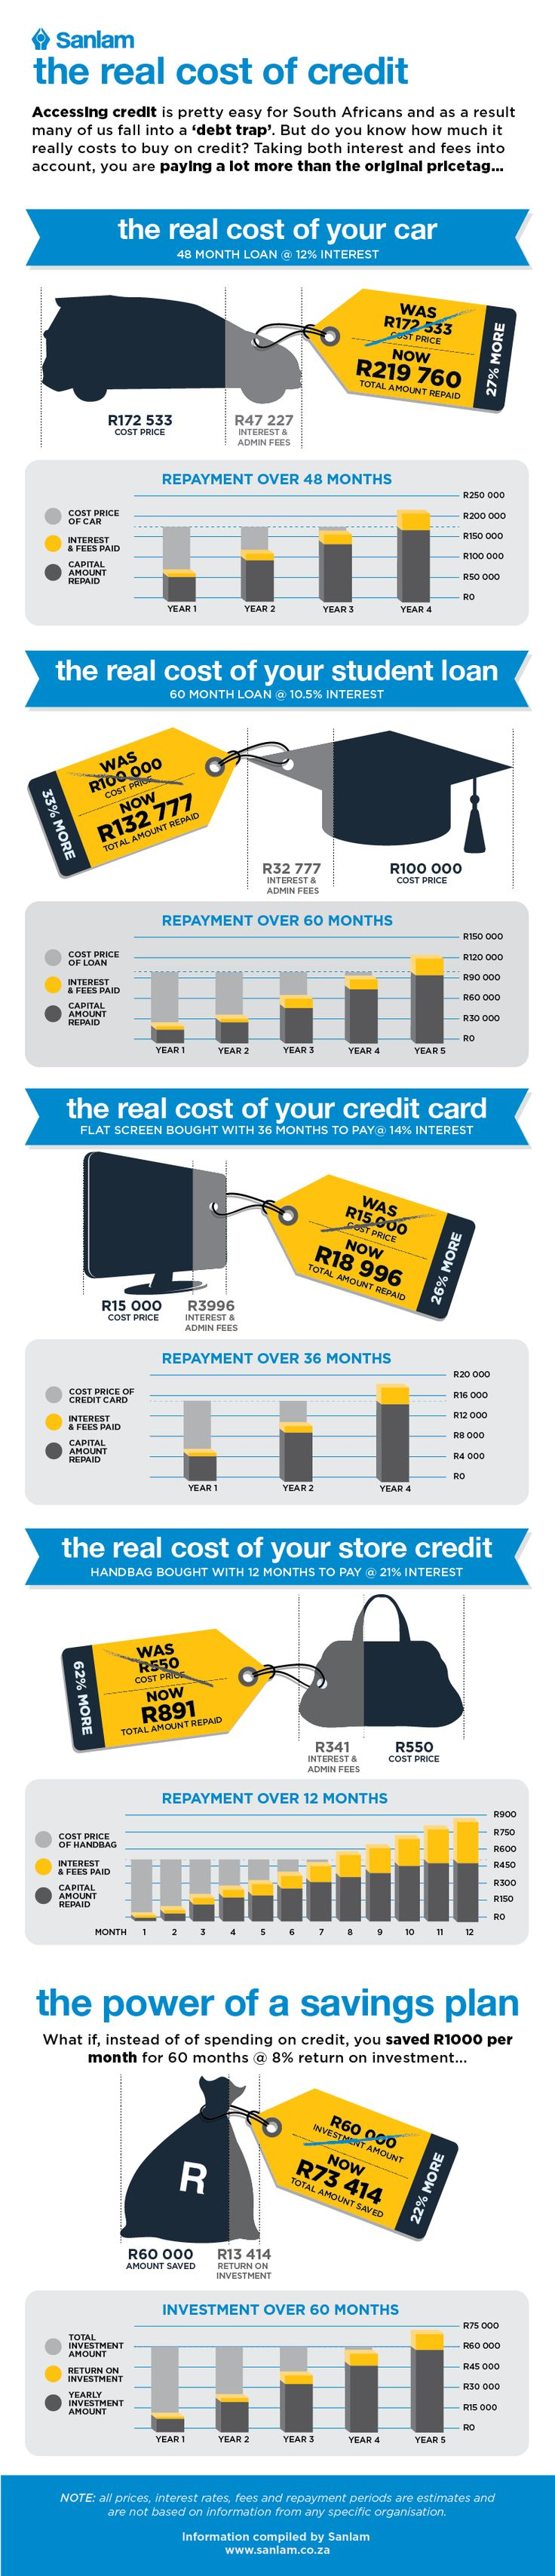 What is the real cost of credit?